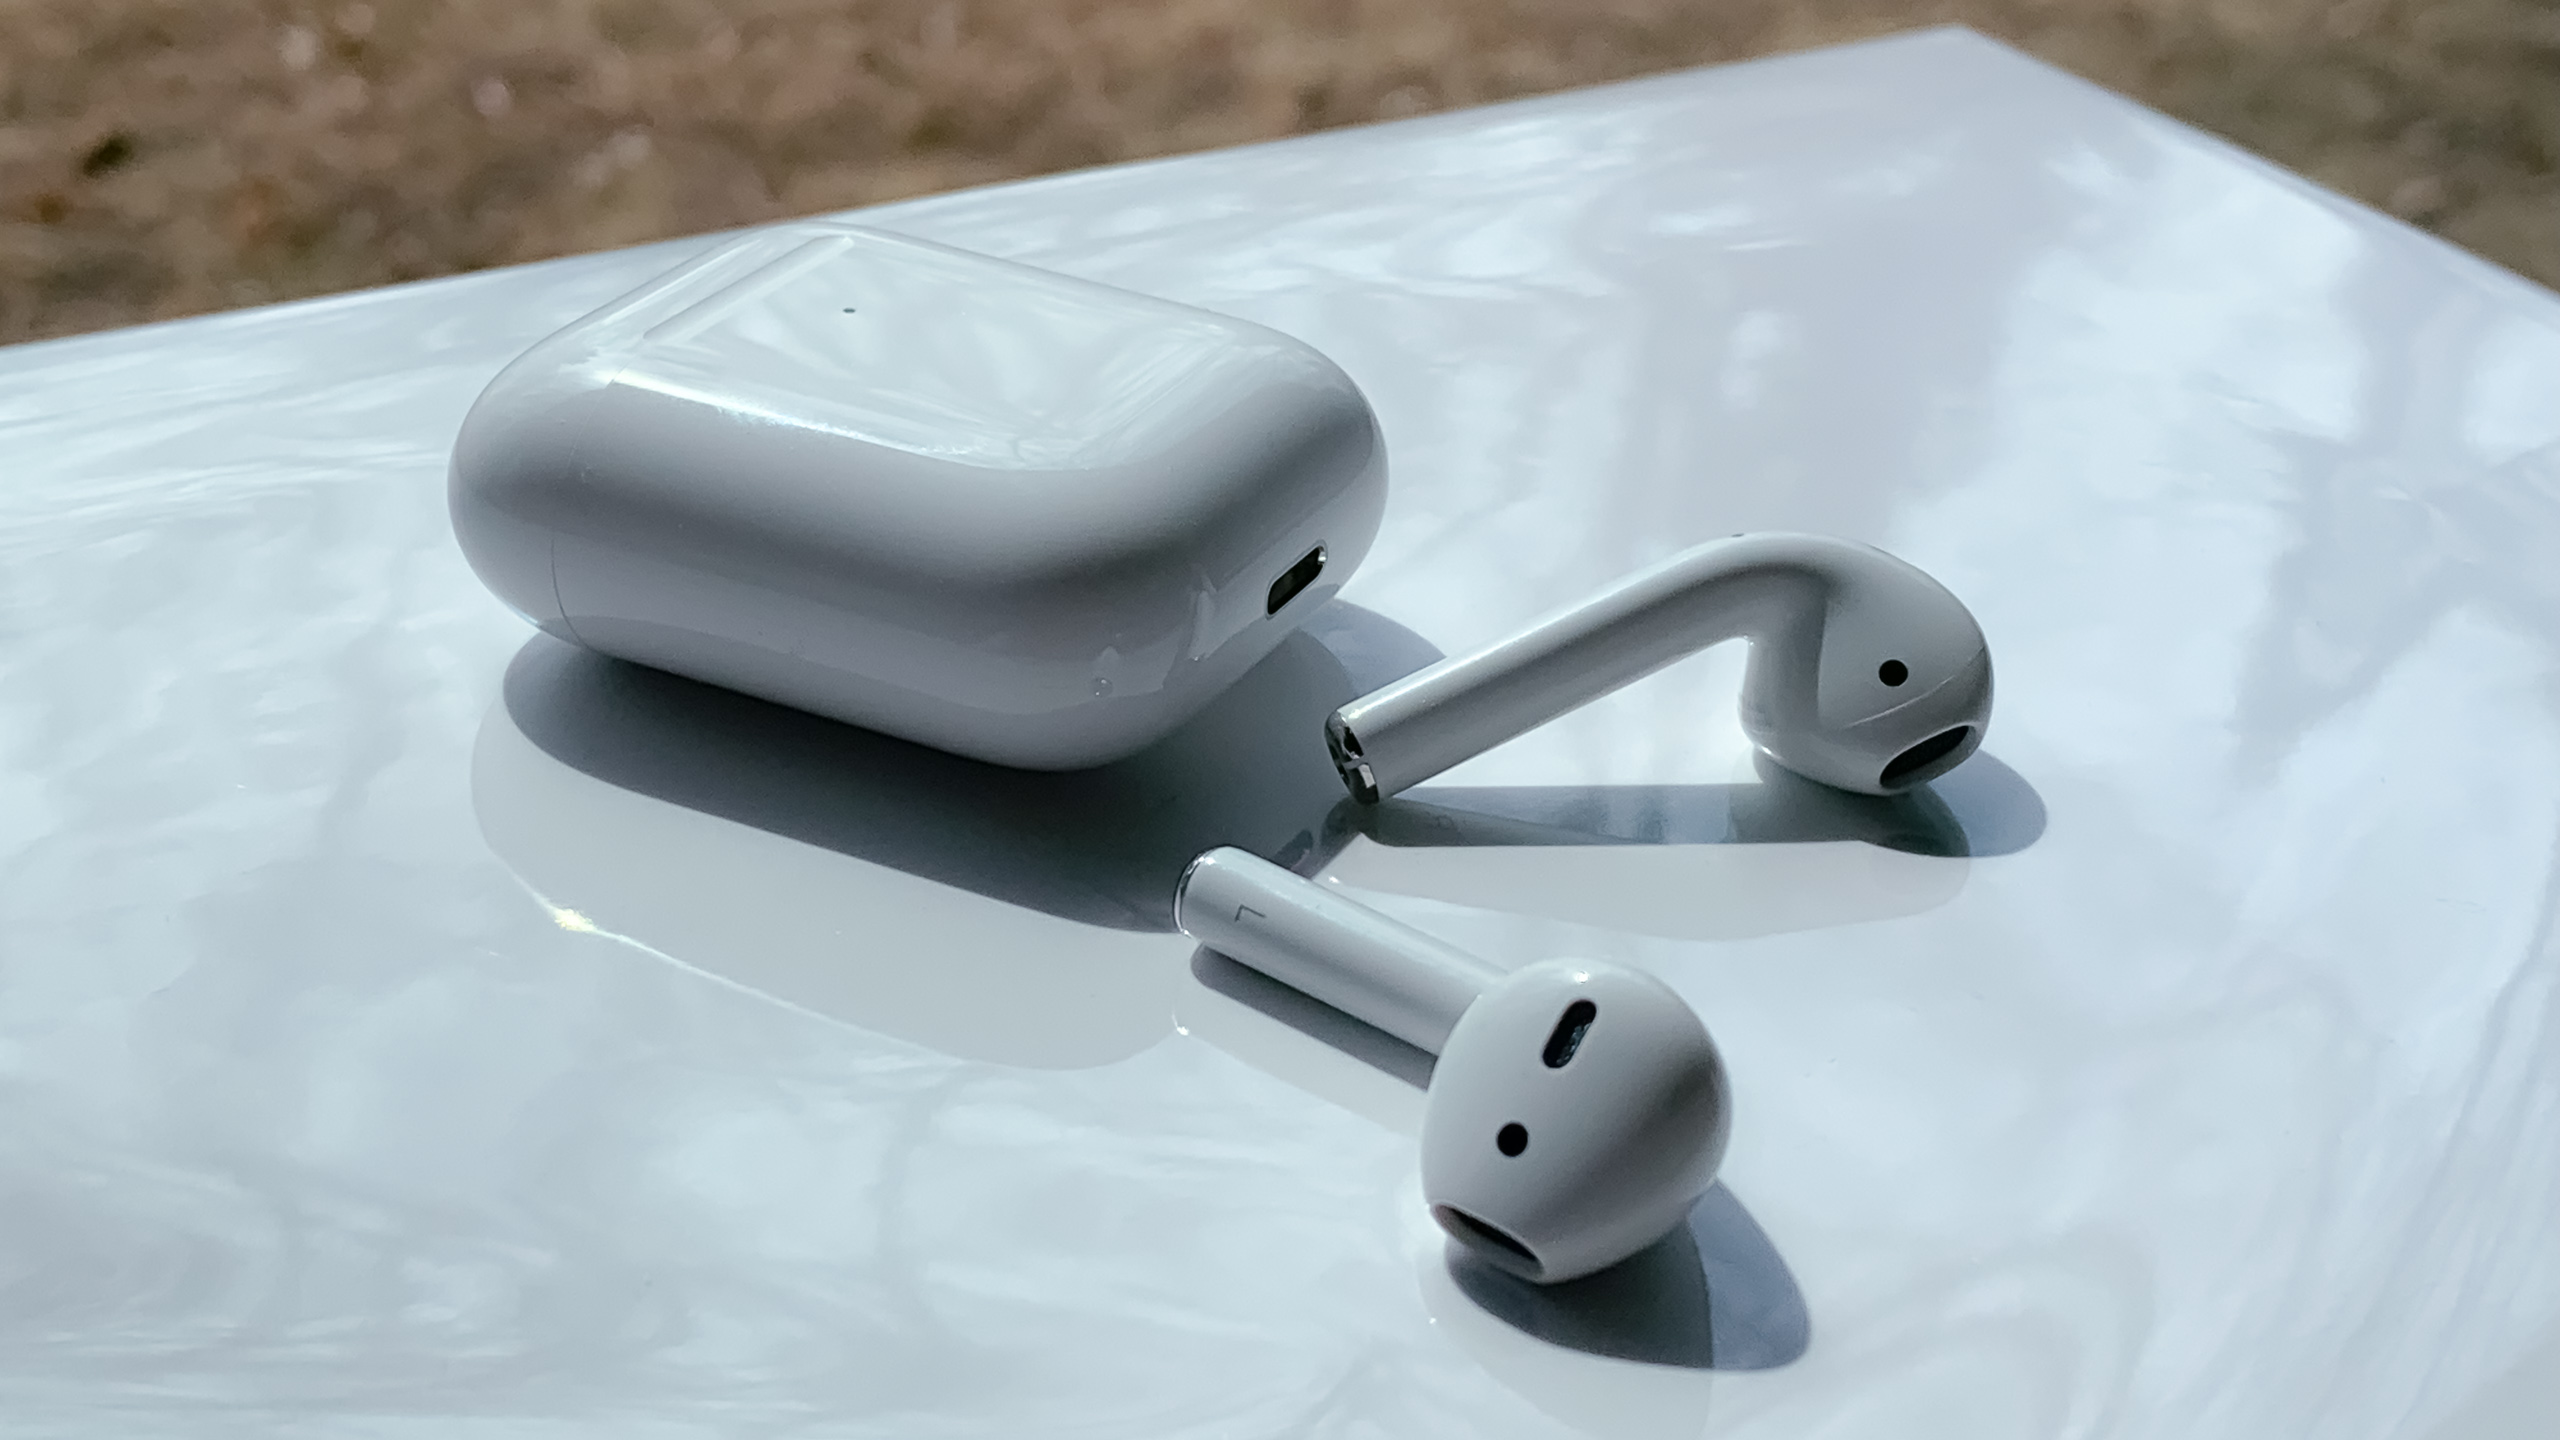 Experiencing AirPods: First impressions of Apple's second-gen wireless earbuds after resisting the originals